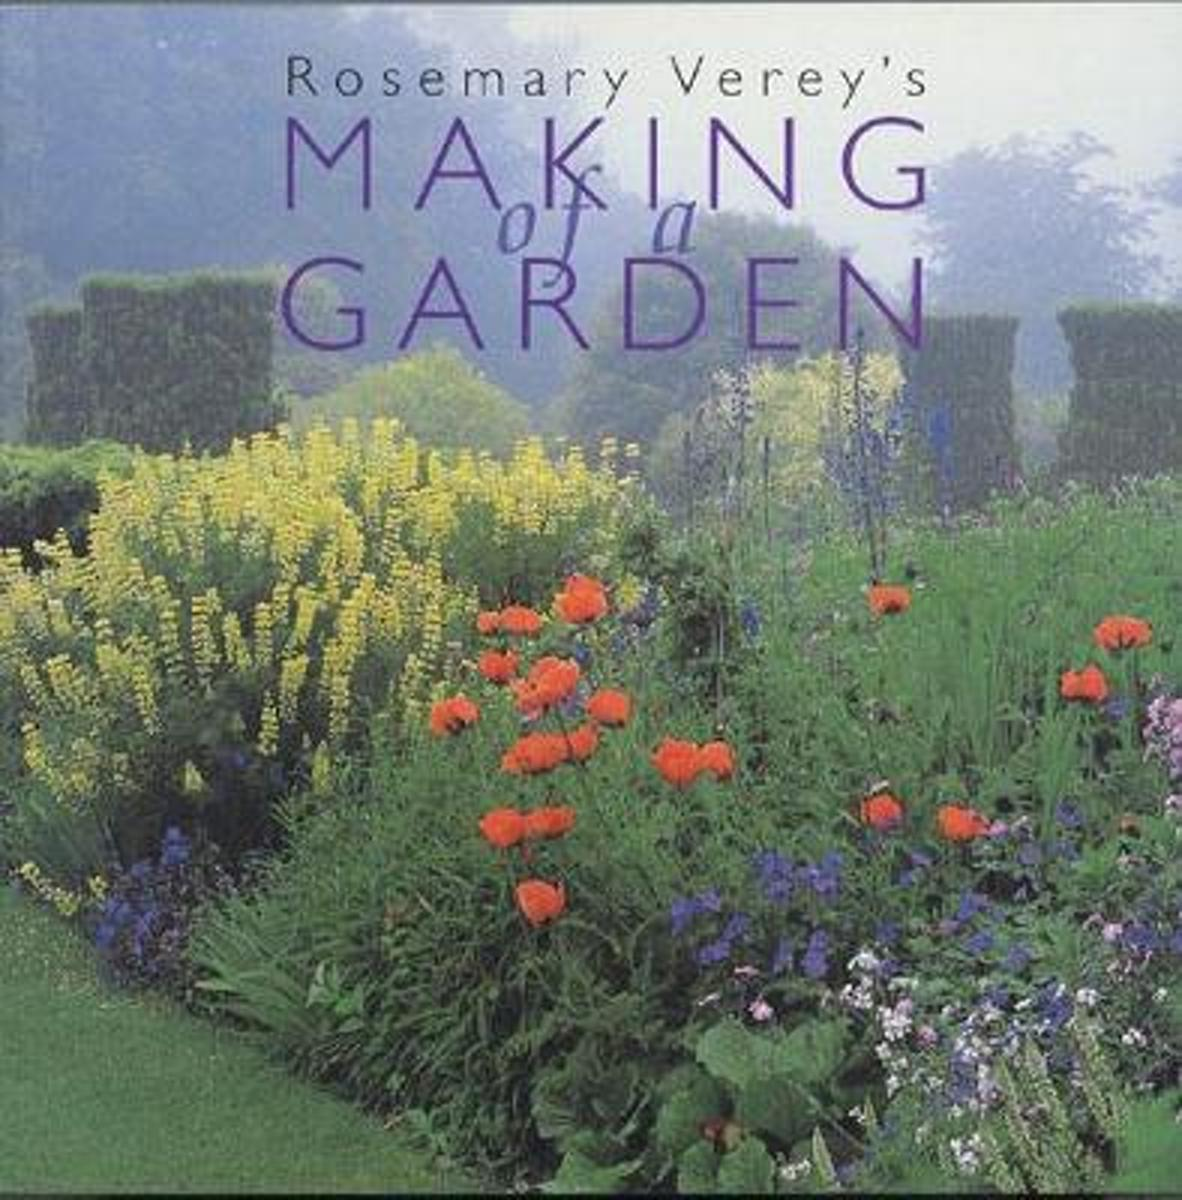 The The Making of a Garden